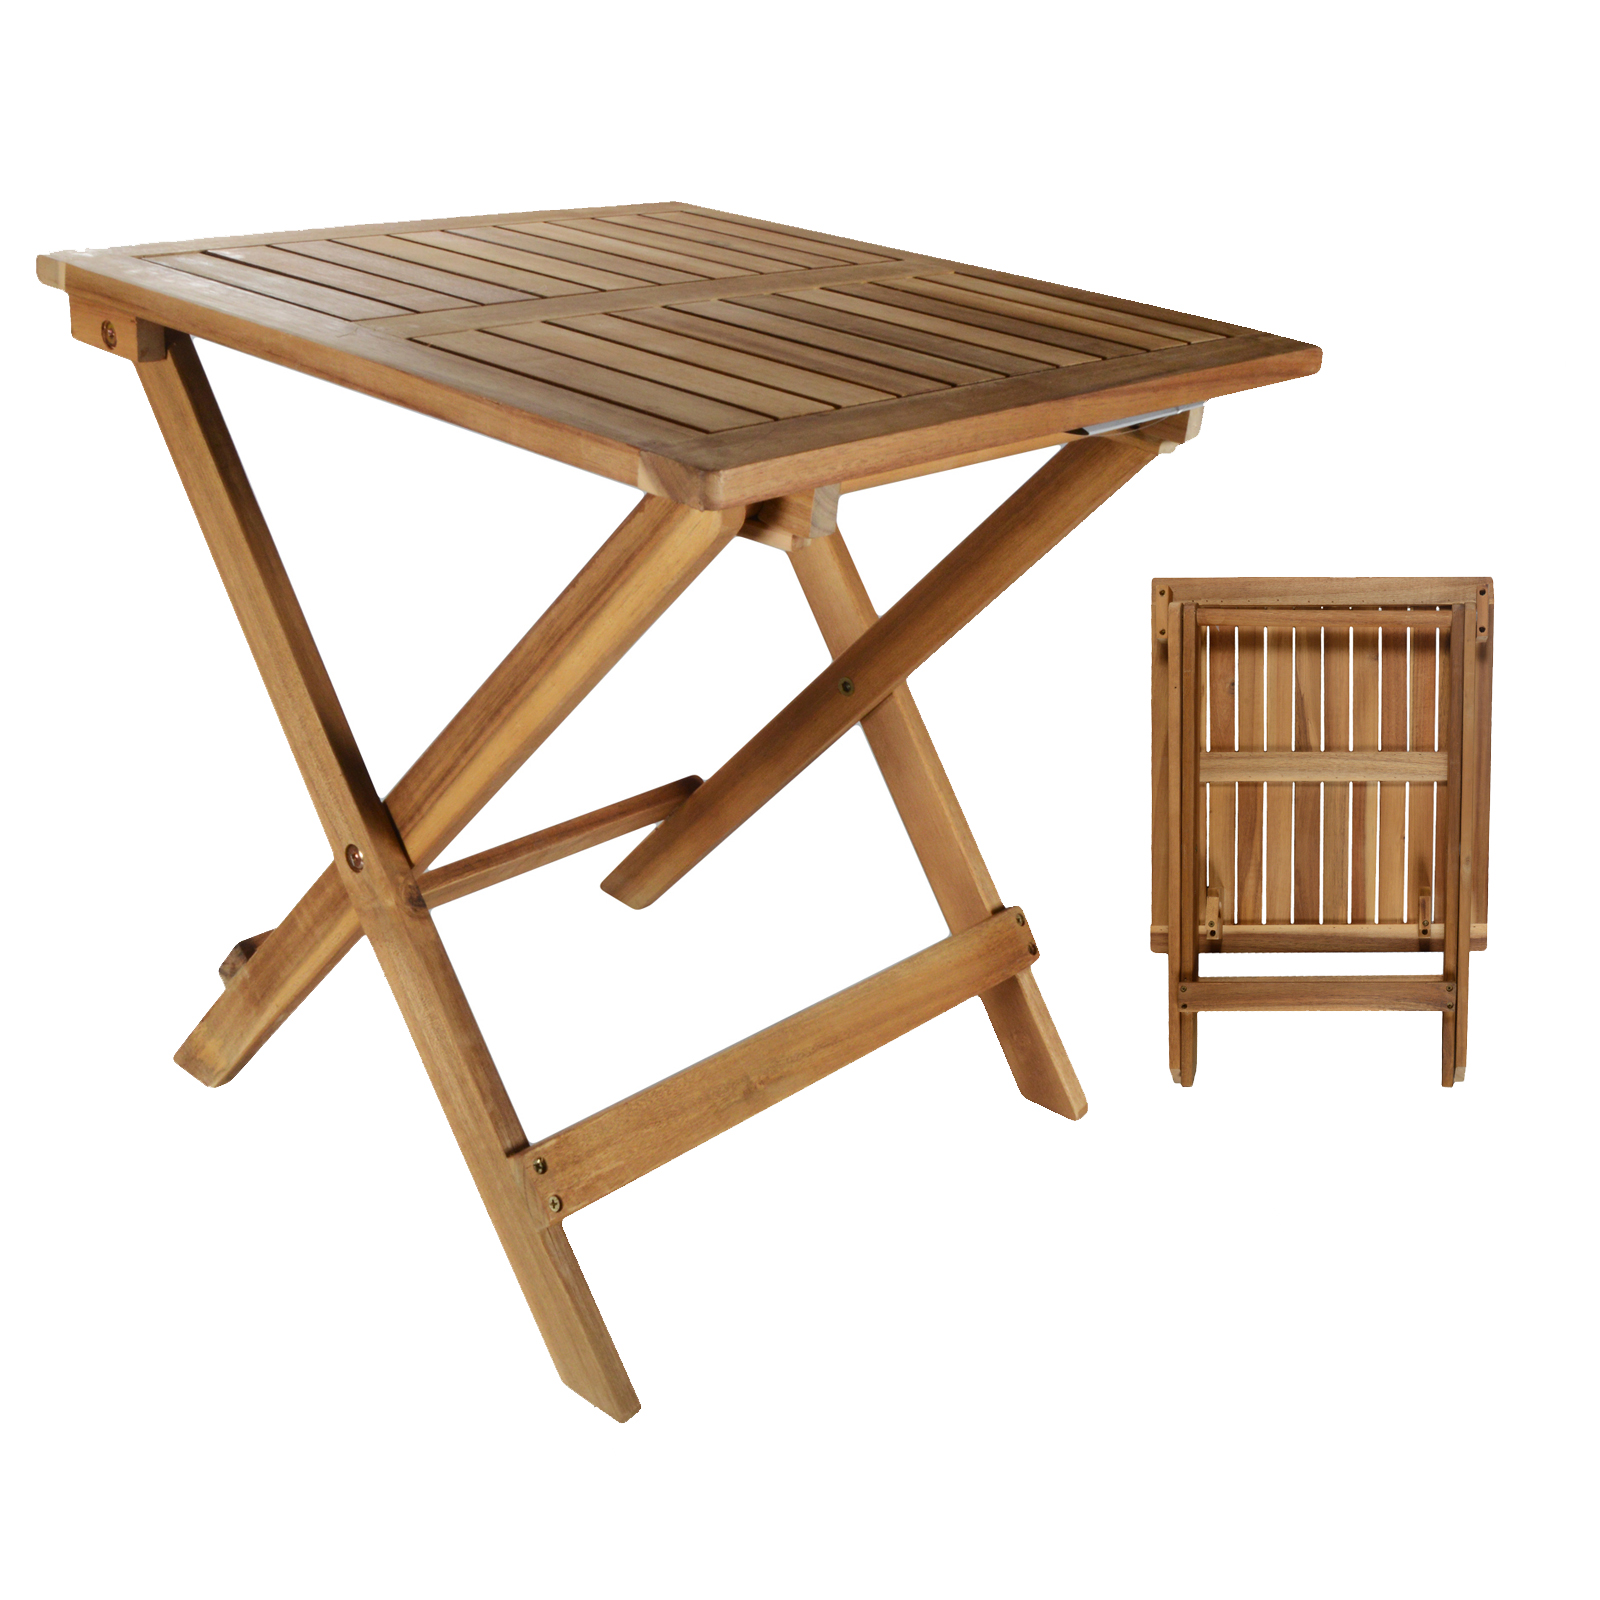 Table en bois table d 39 appoint table bois d 39 acacia bois - Table basse pliante bois ...